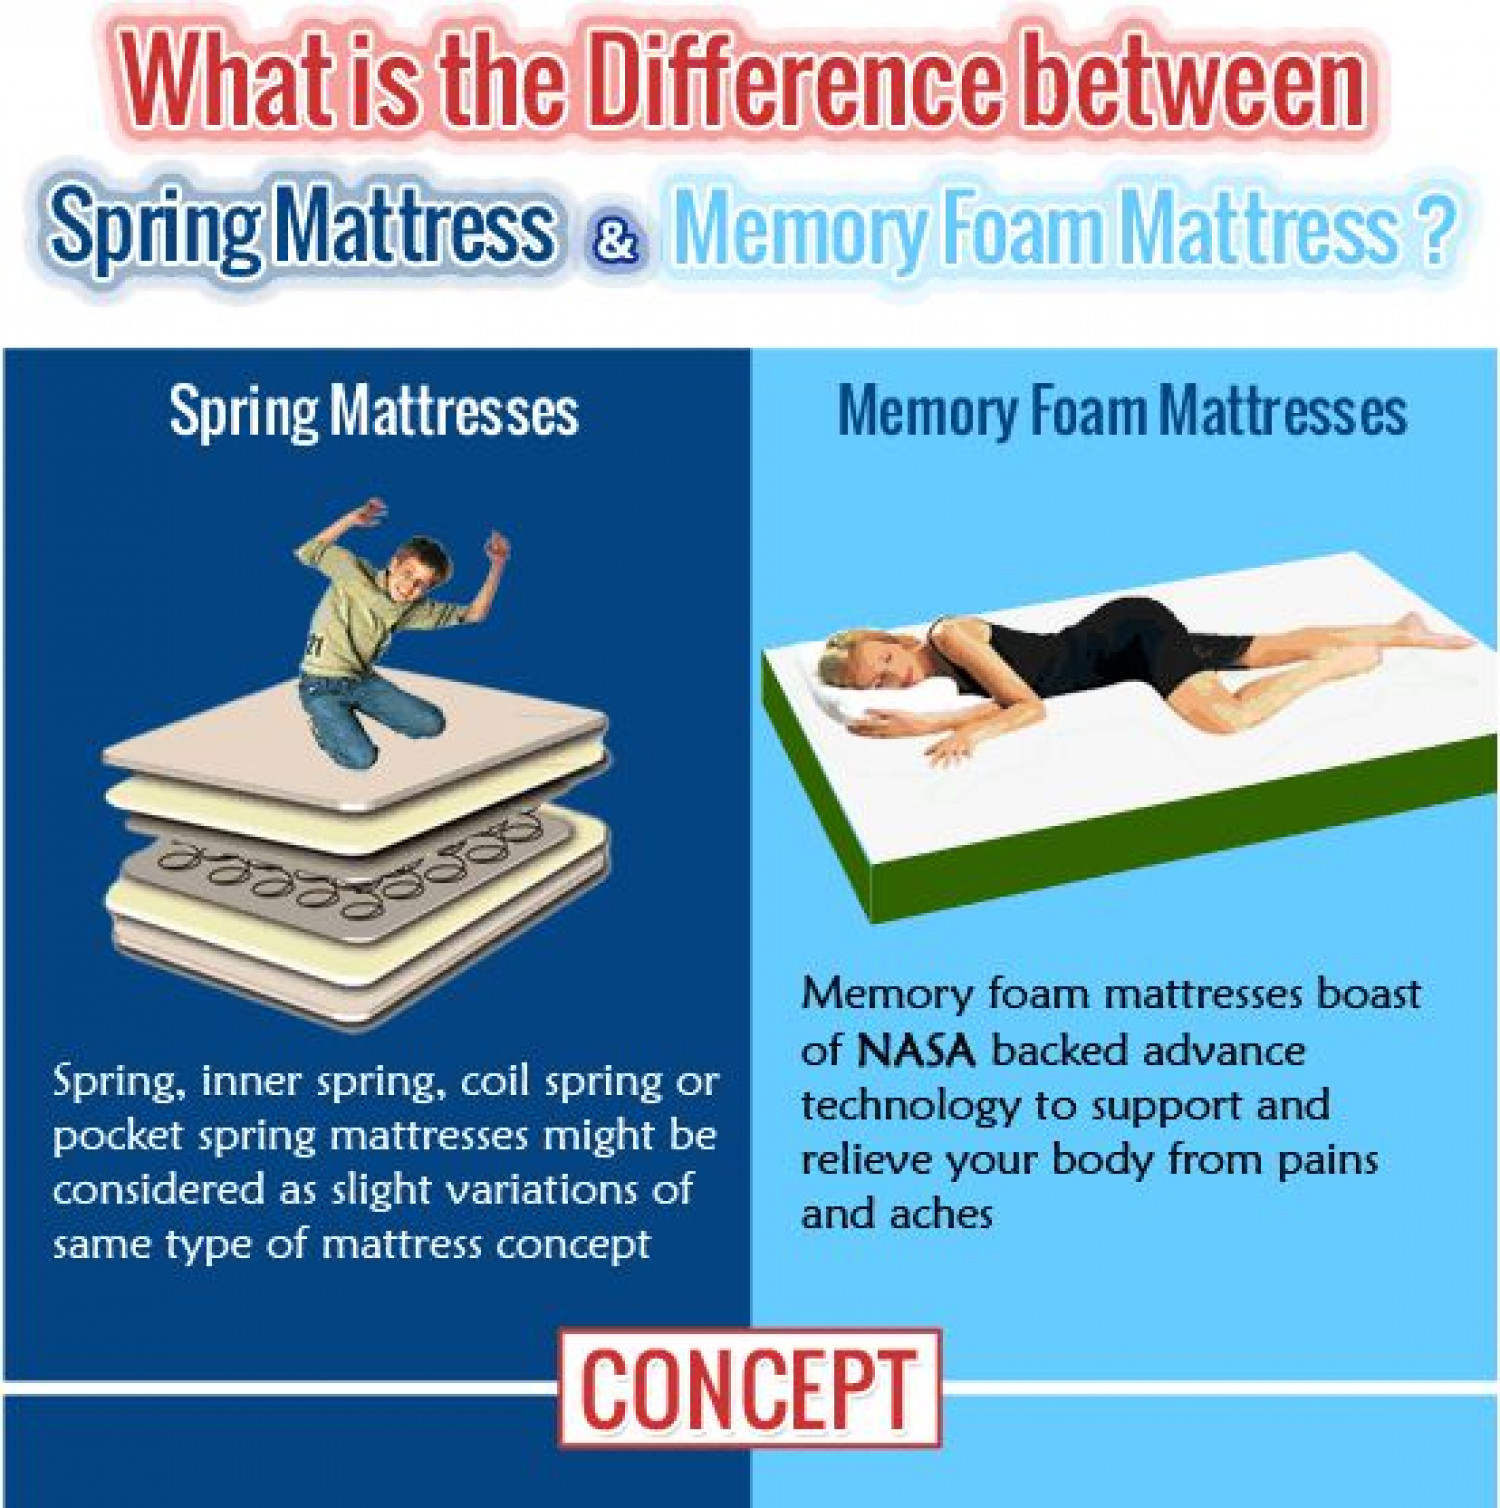 The Difference Between Spring Based Mattress And Memory